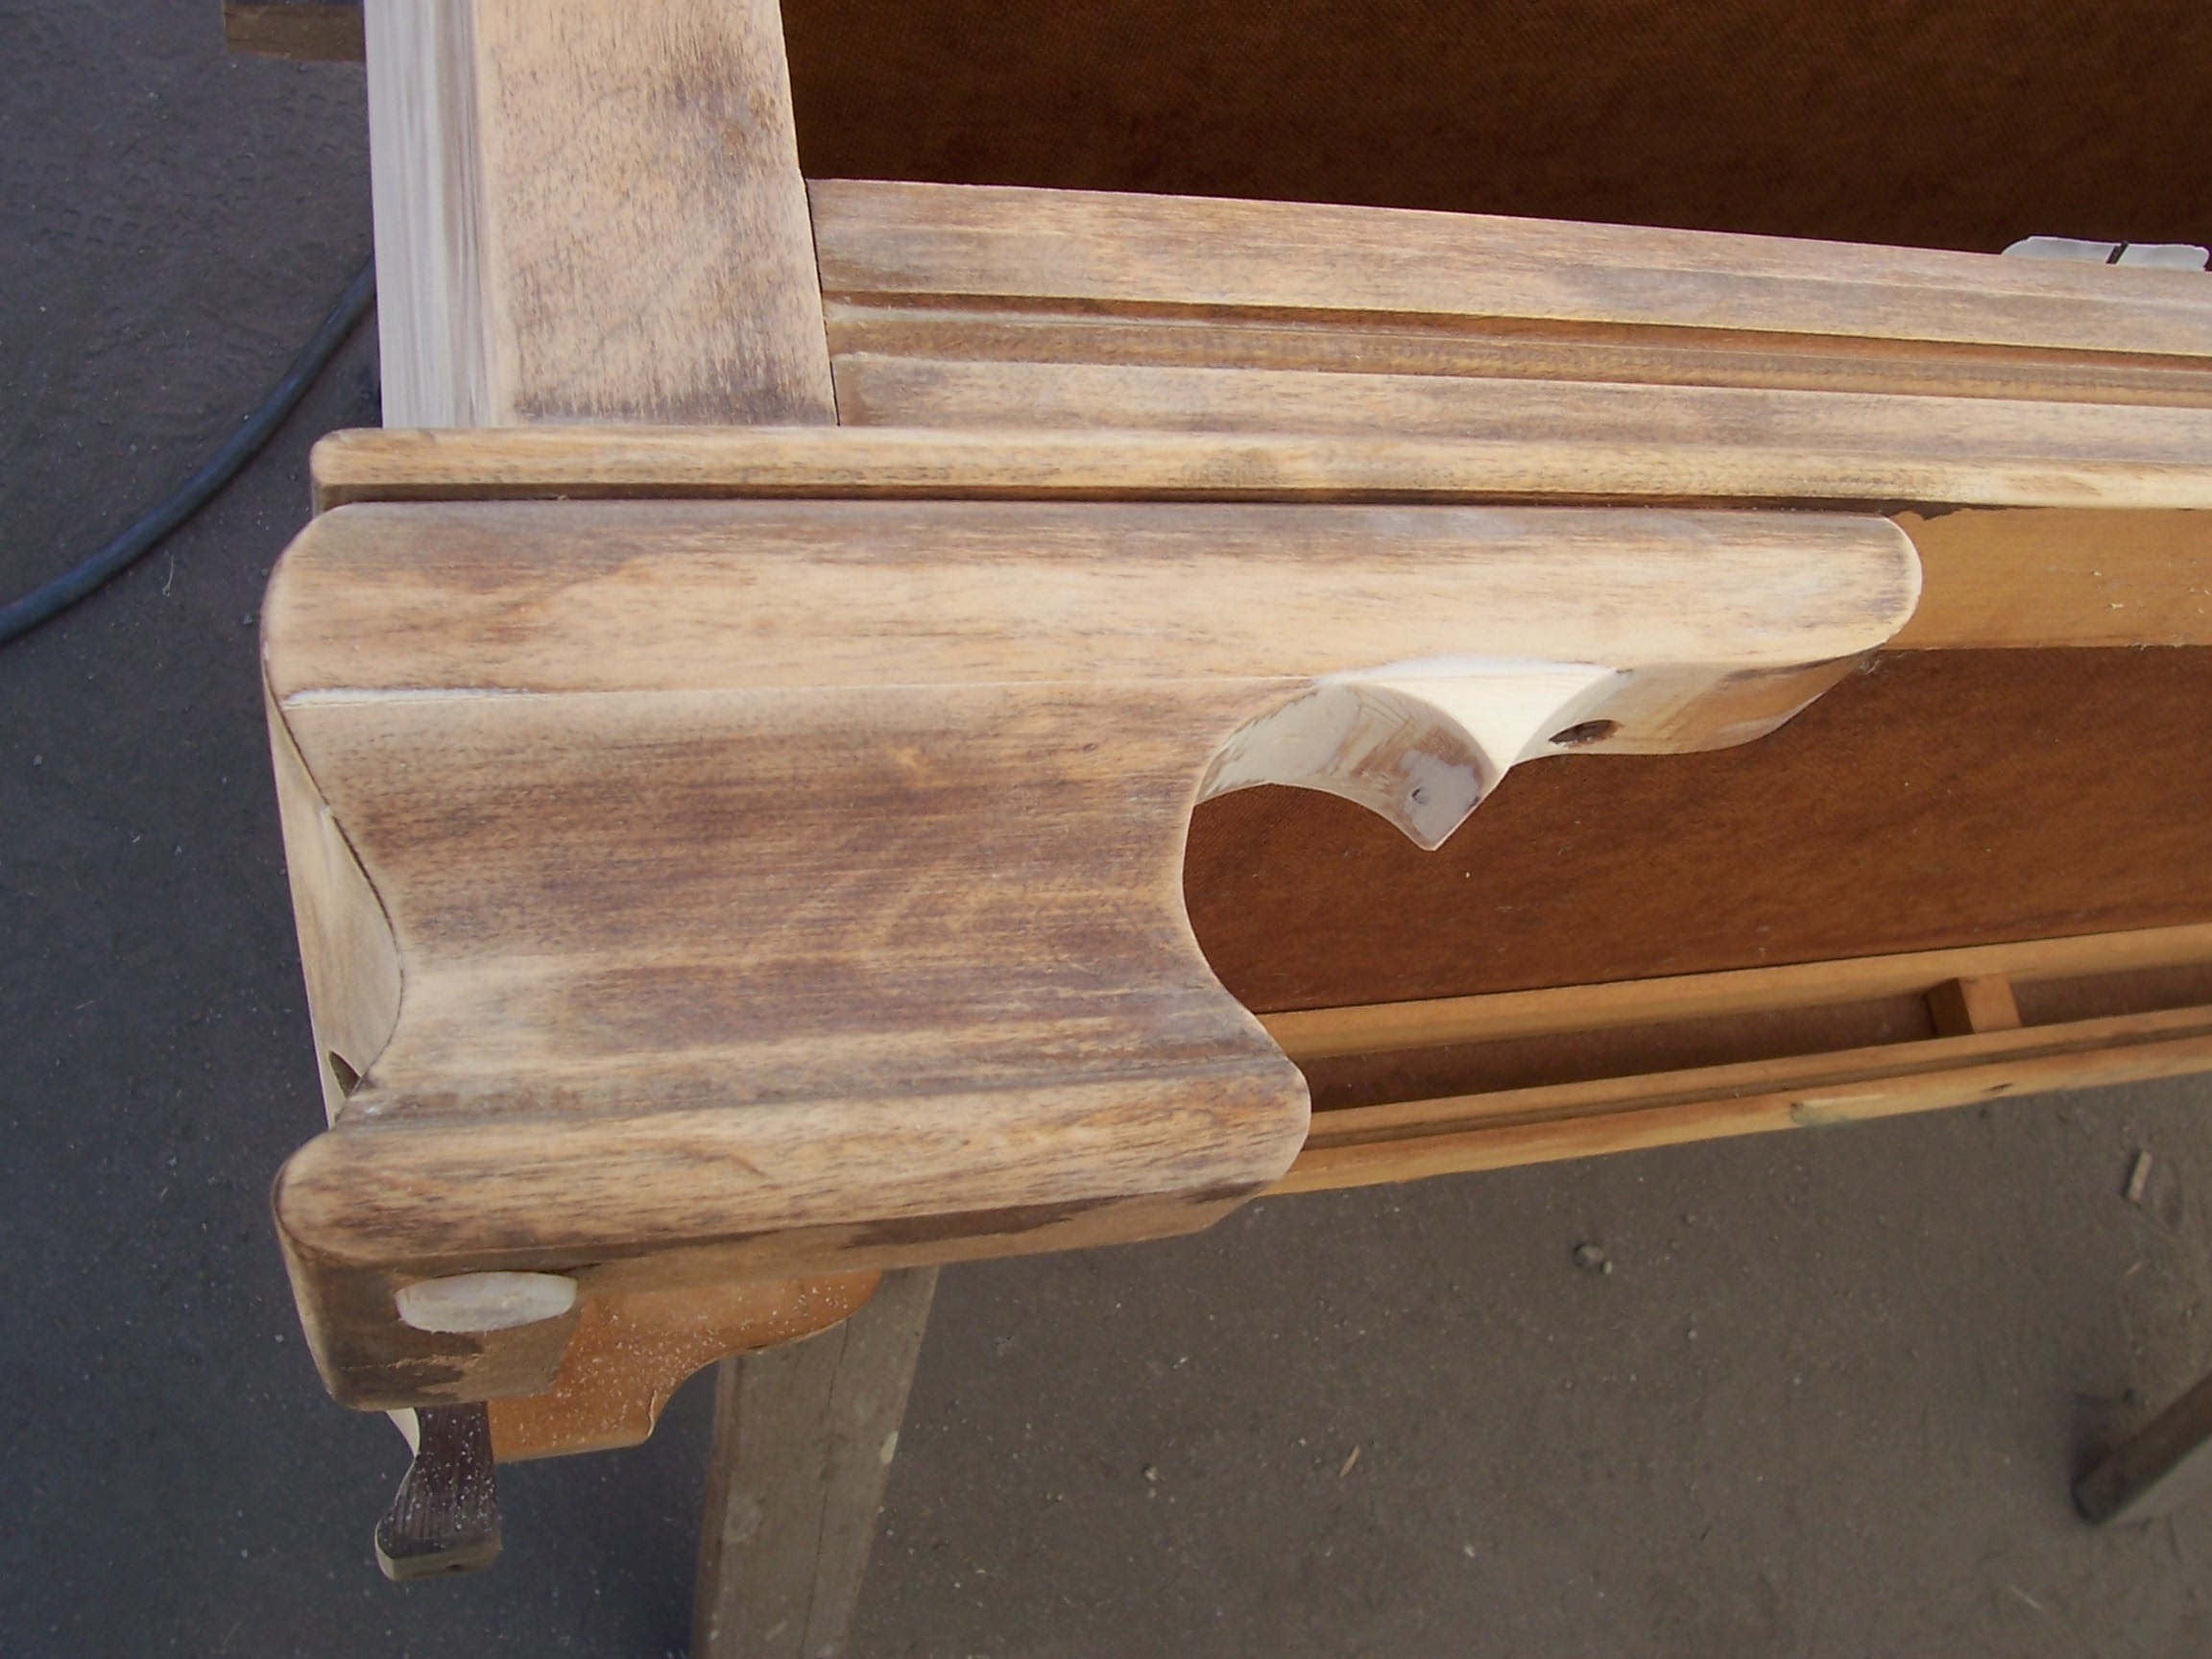 Furniture Refinishing Repairs-www.paulsfurniturerestoration.com